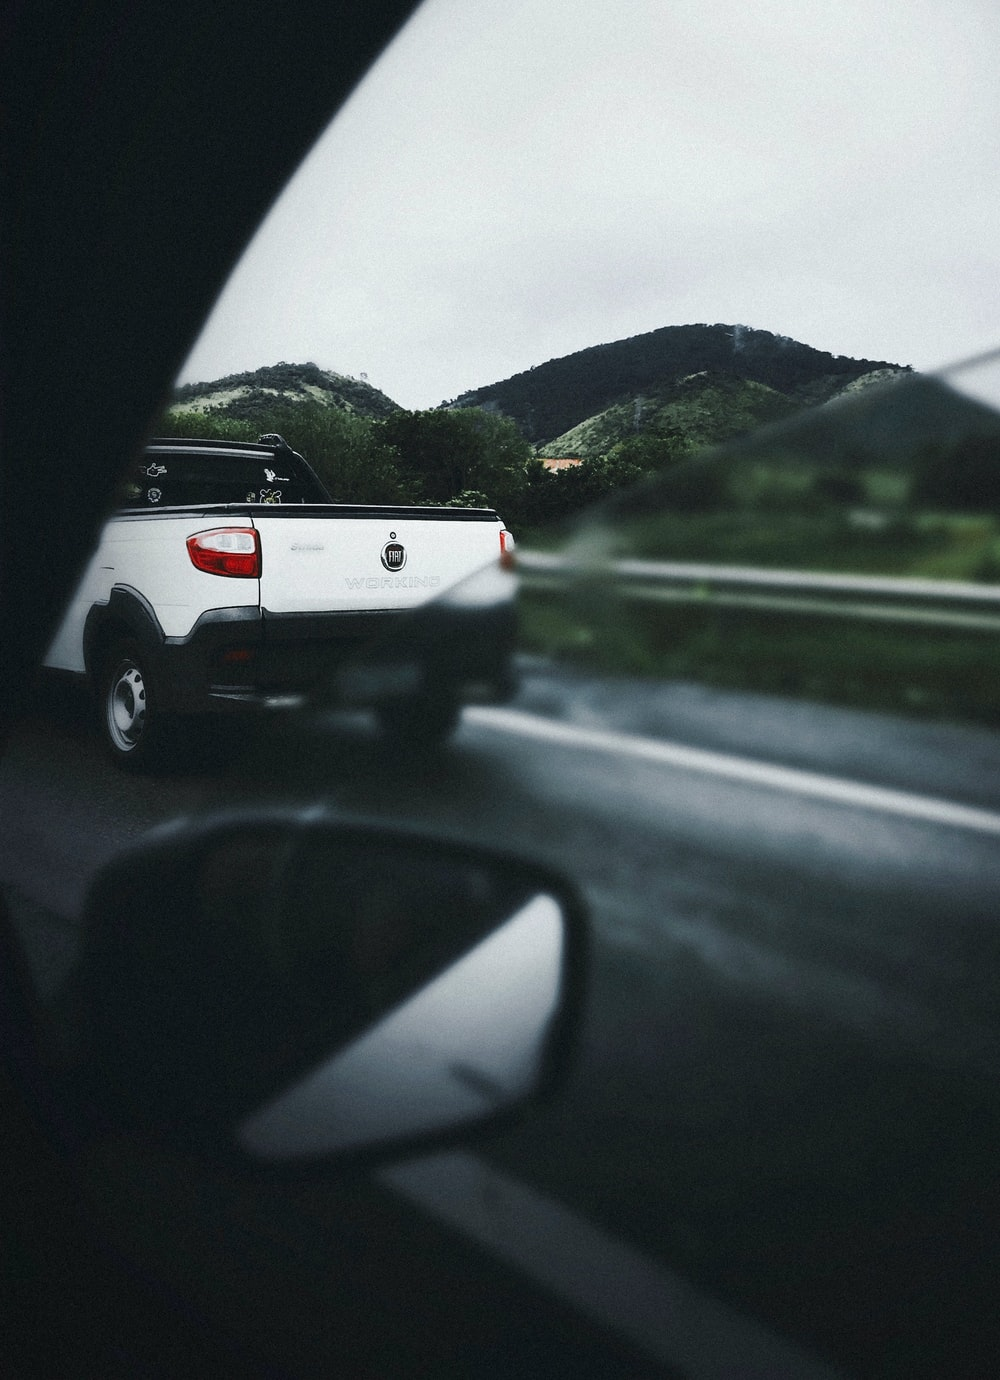 white pickup truck travelling on road